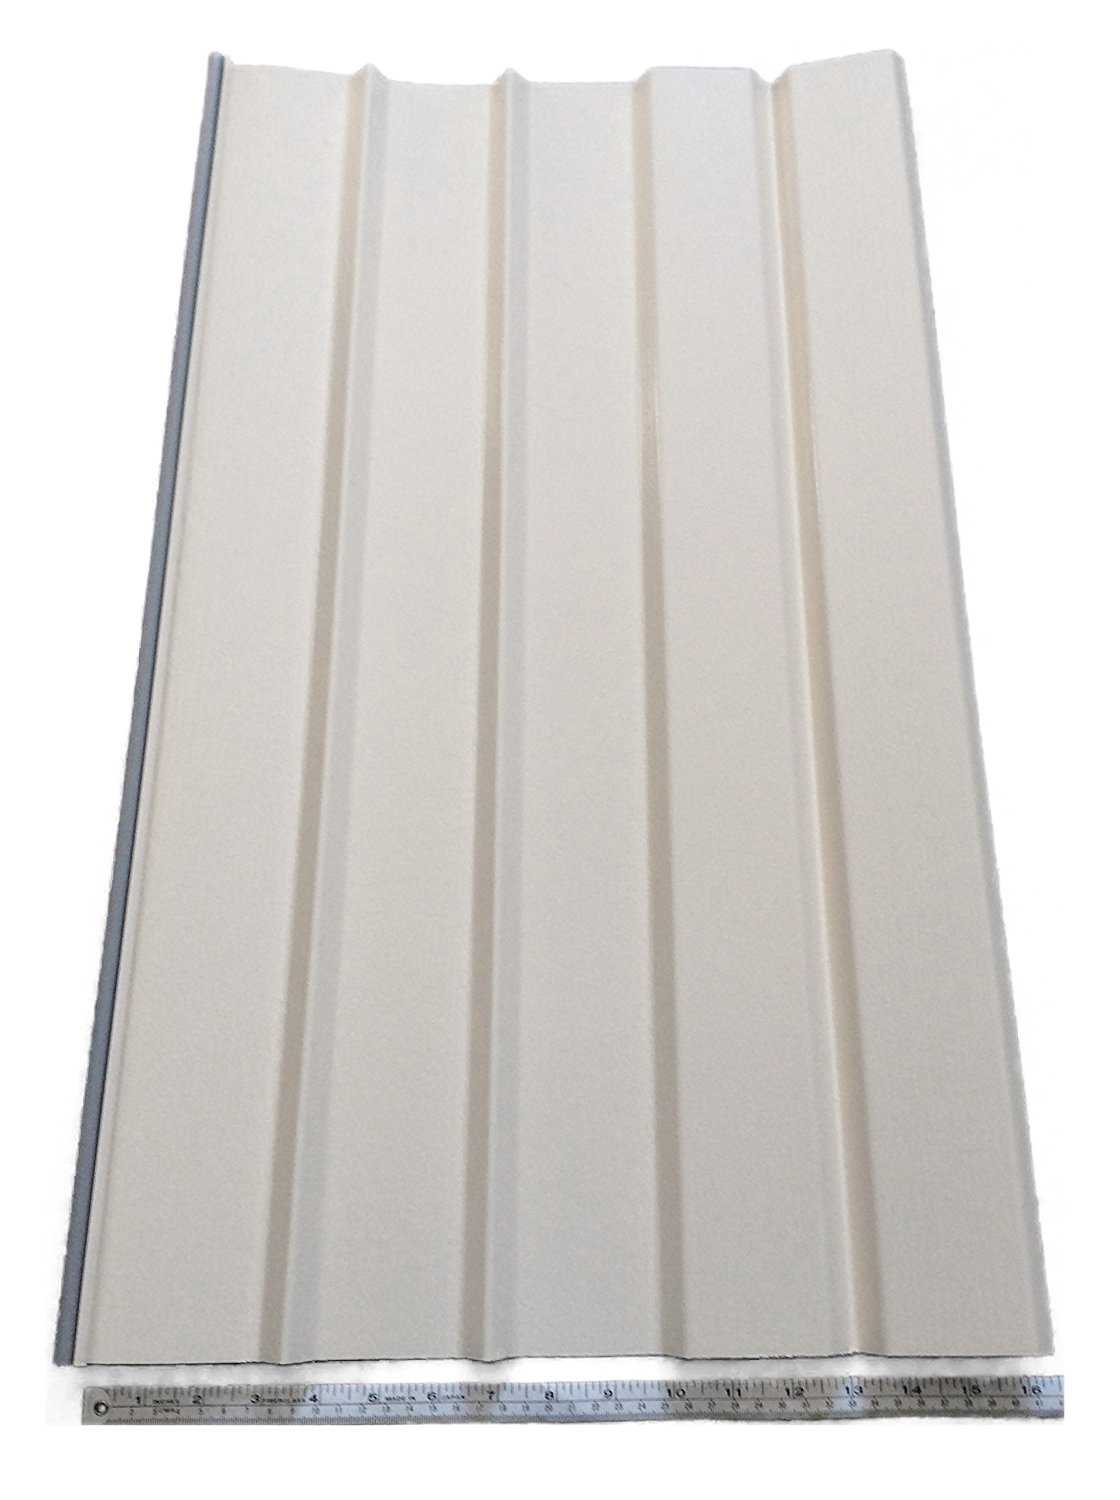 Mobile Home Skirting Box of 8 Cameo(Off White) Panels 16' Wide X 35' Tall